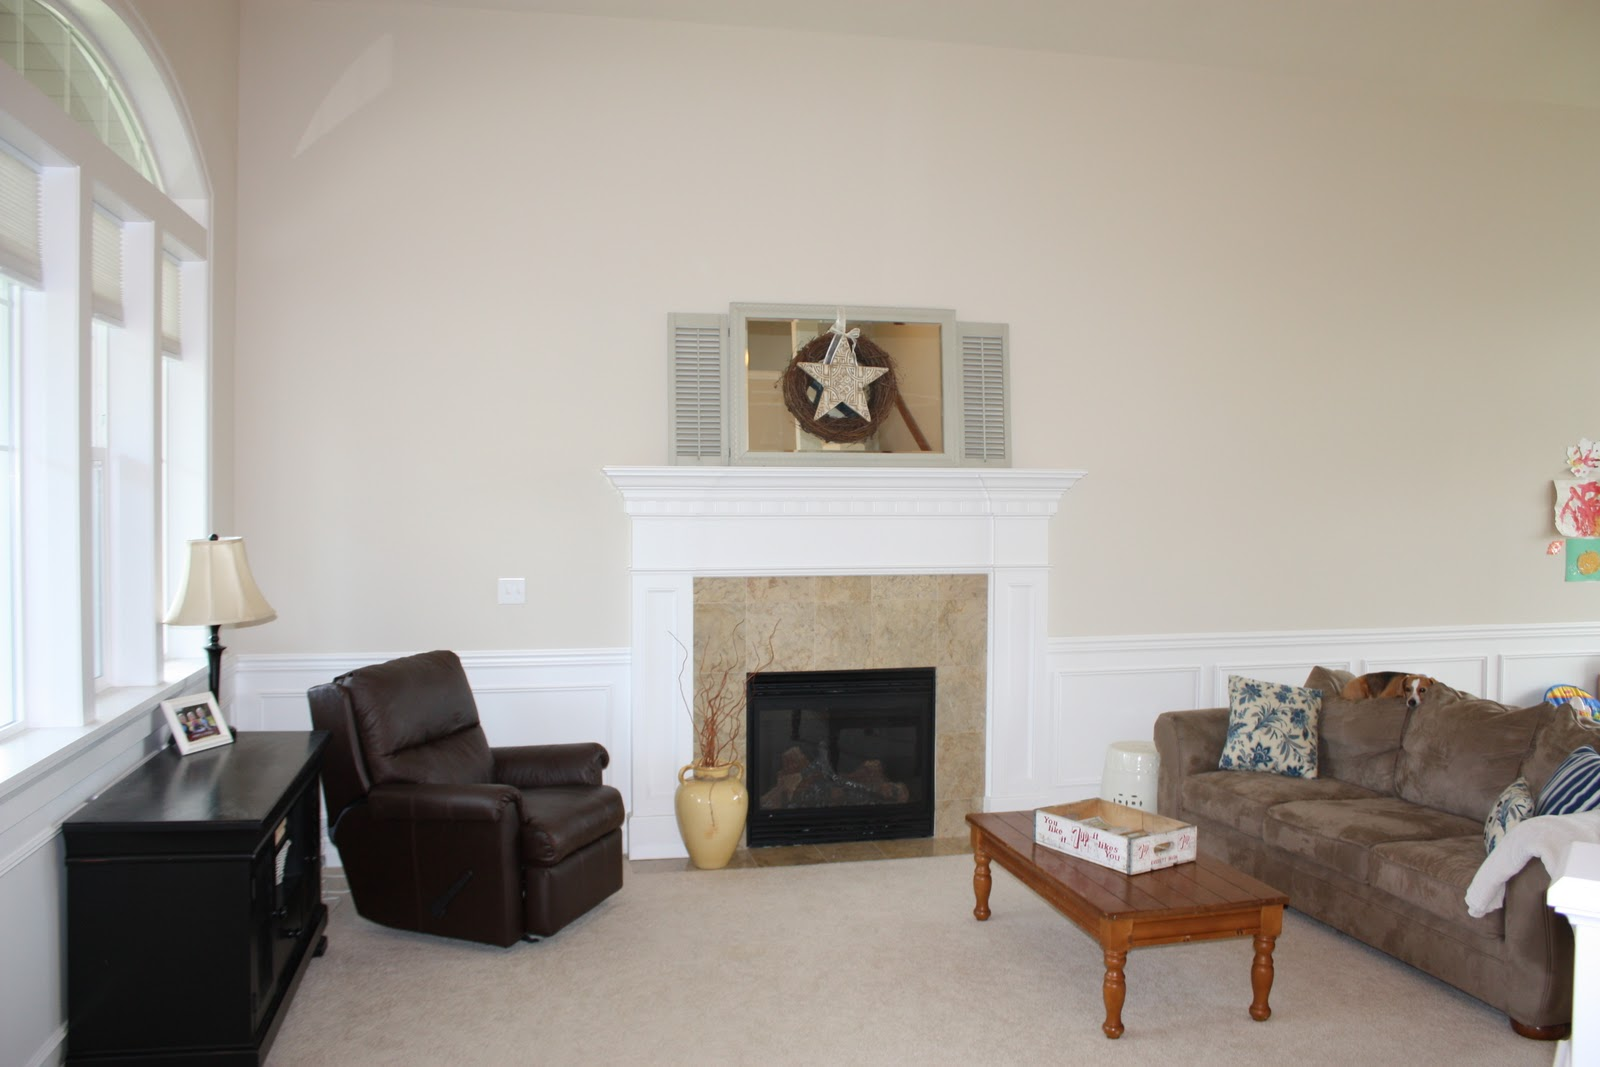 Here Is The BEFORE What Our Living Room Looks Like Now